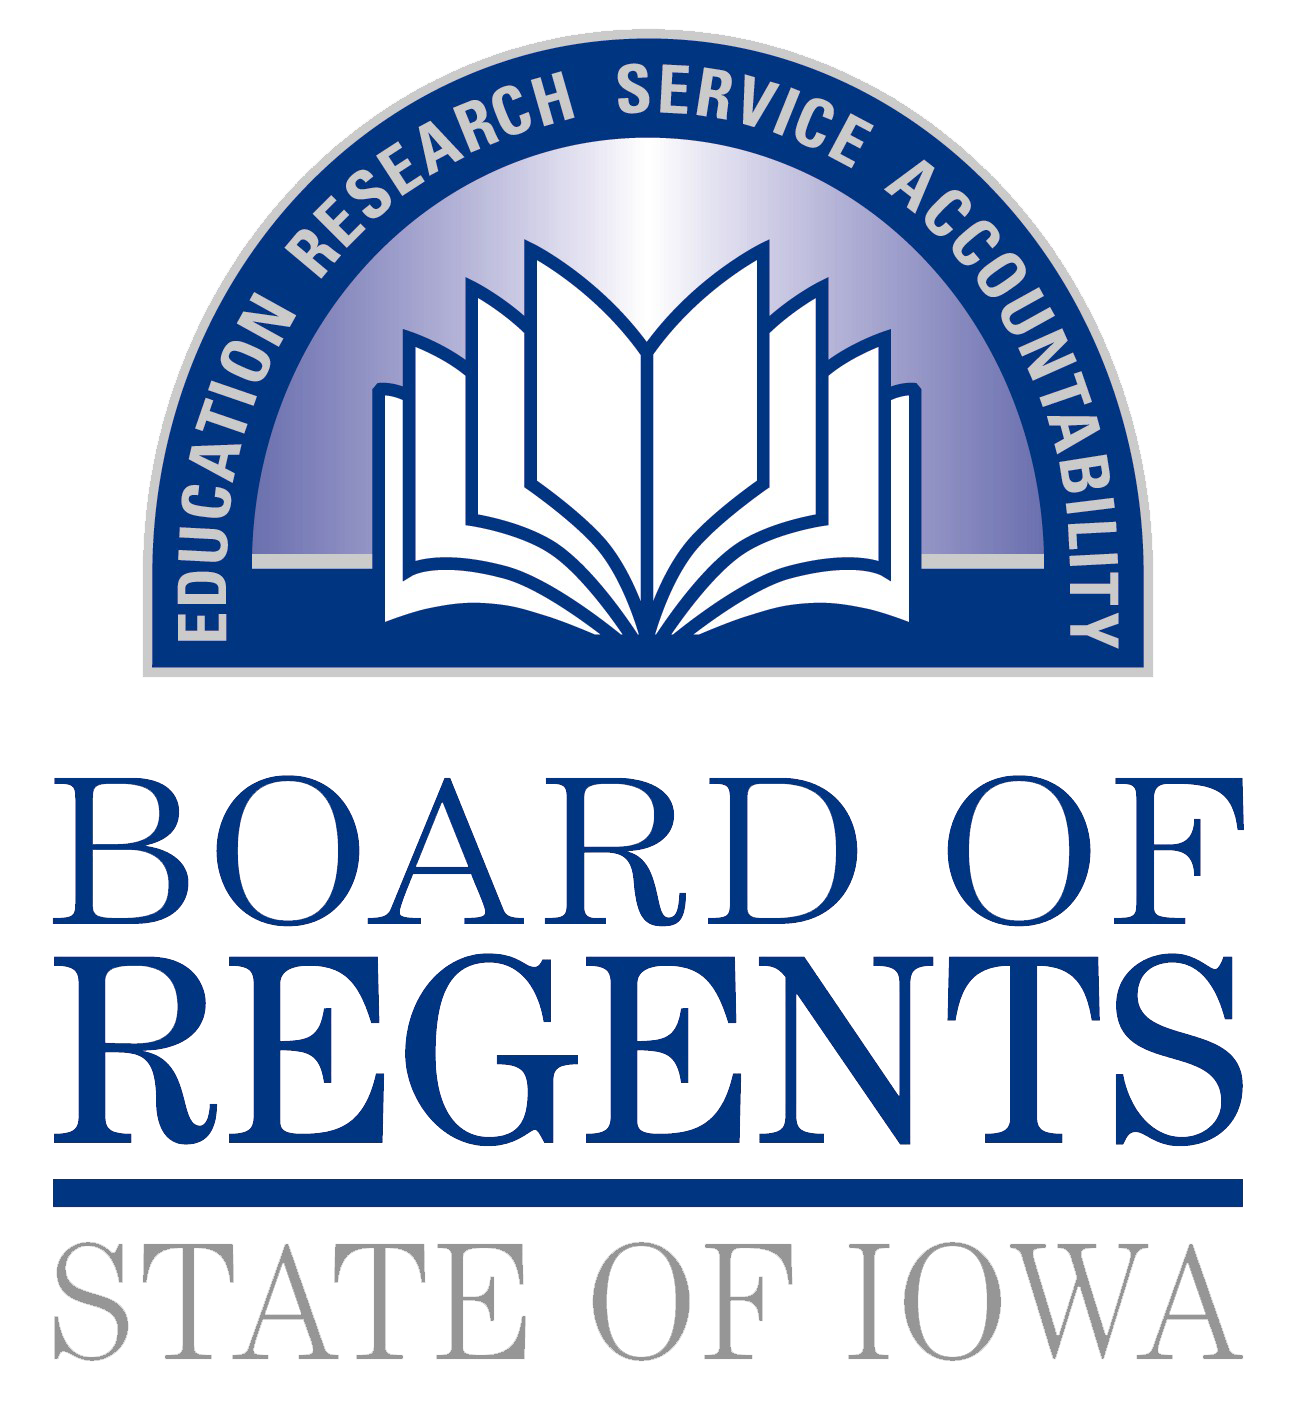 Iowa Board of Regents